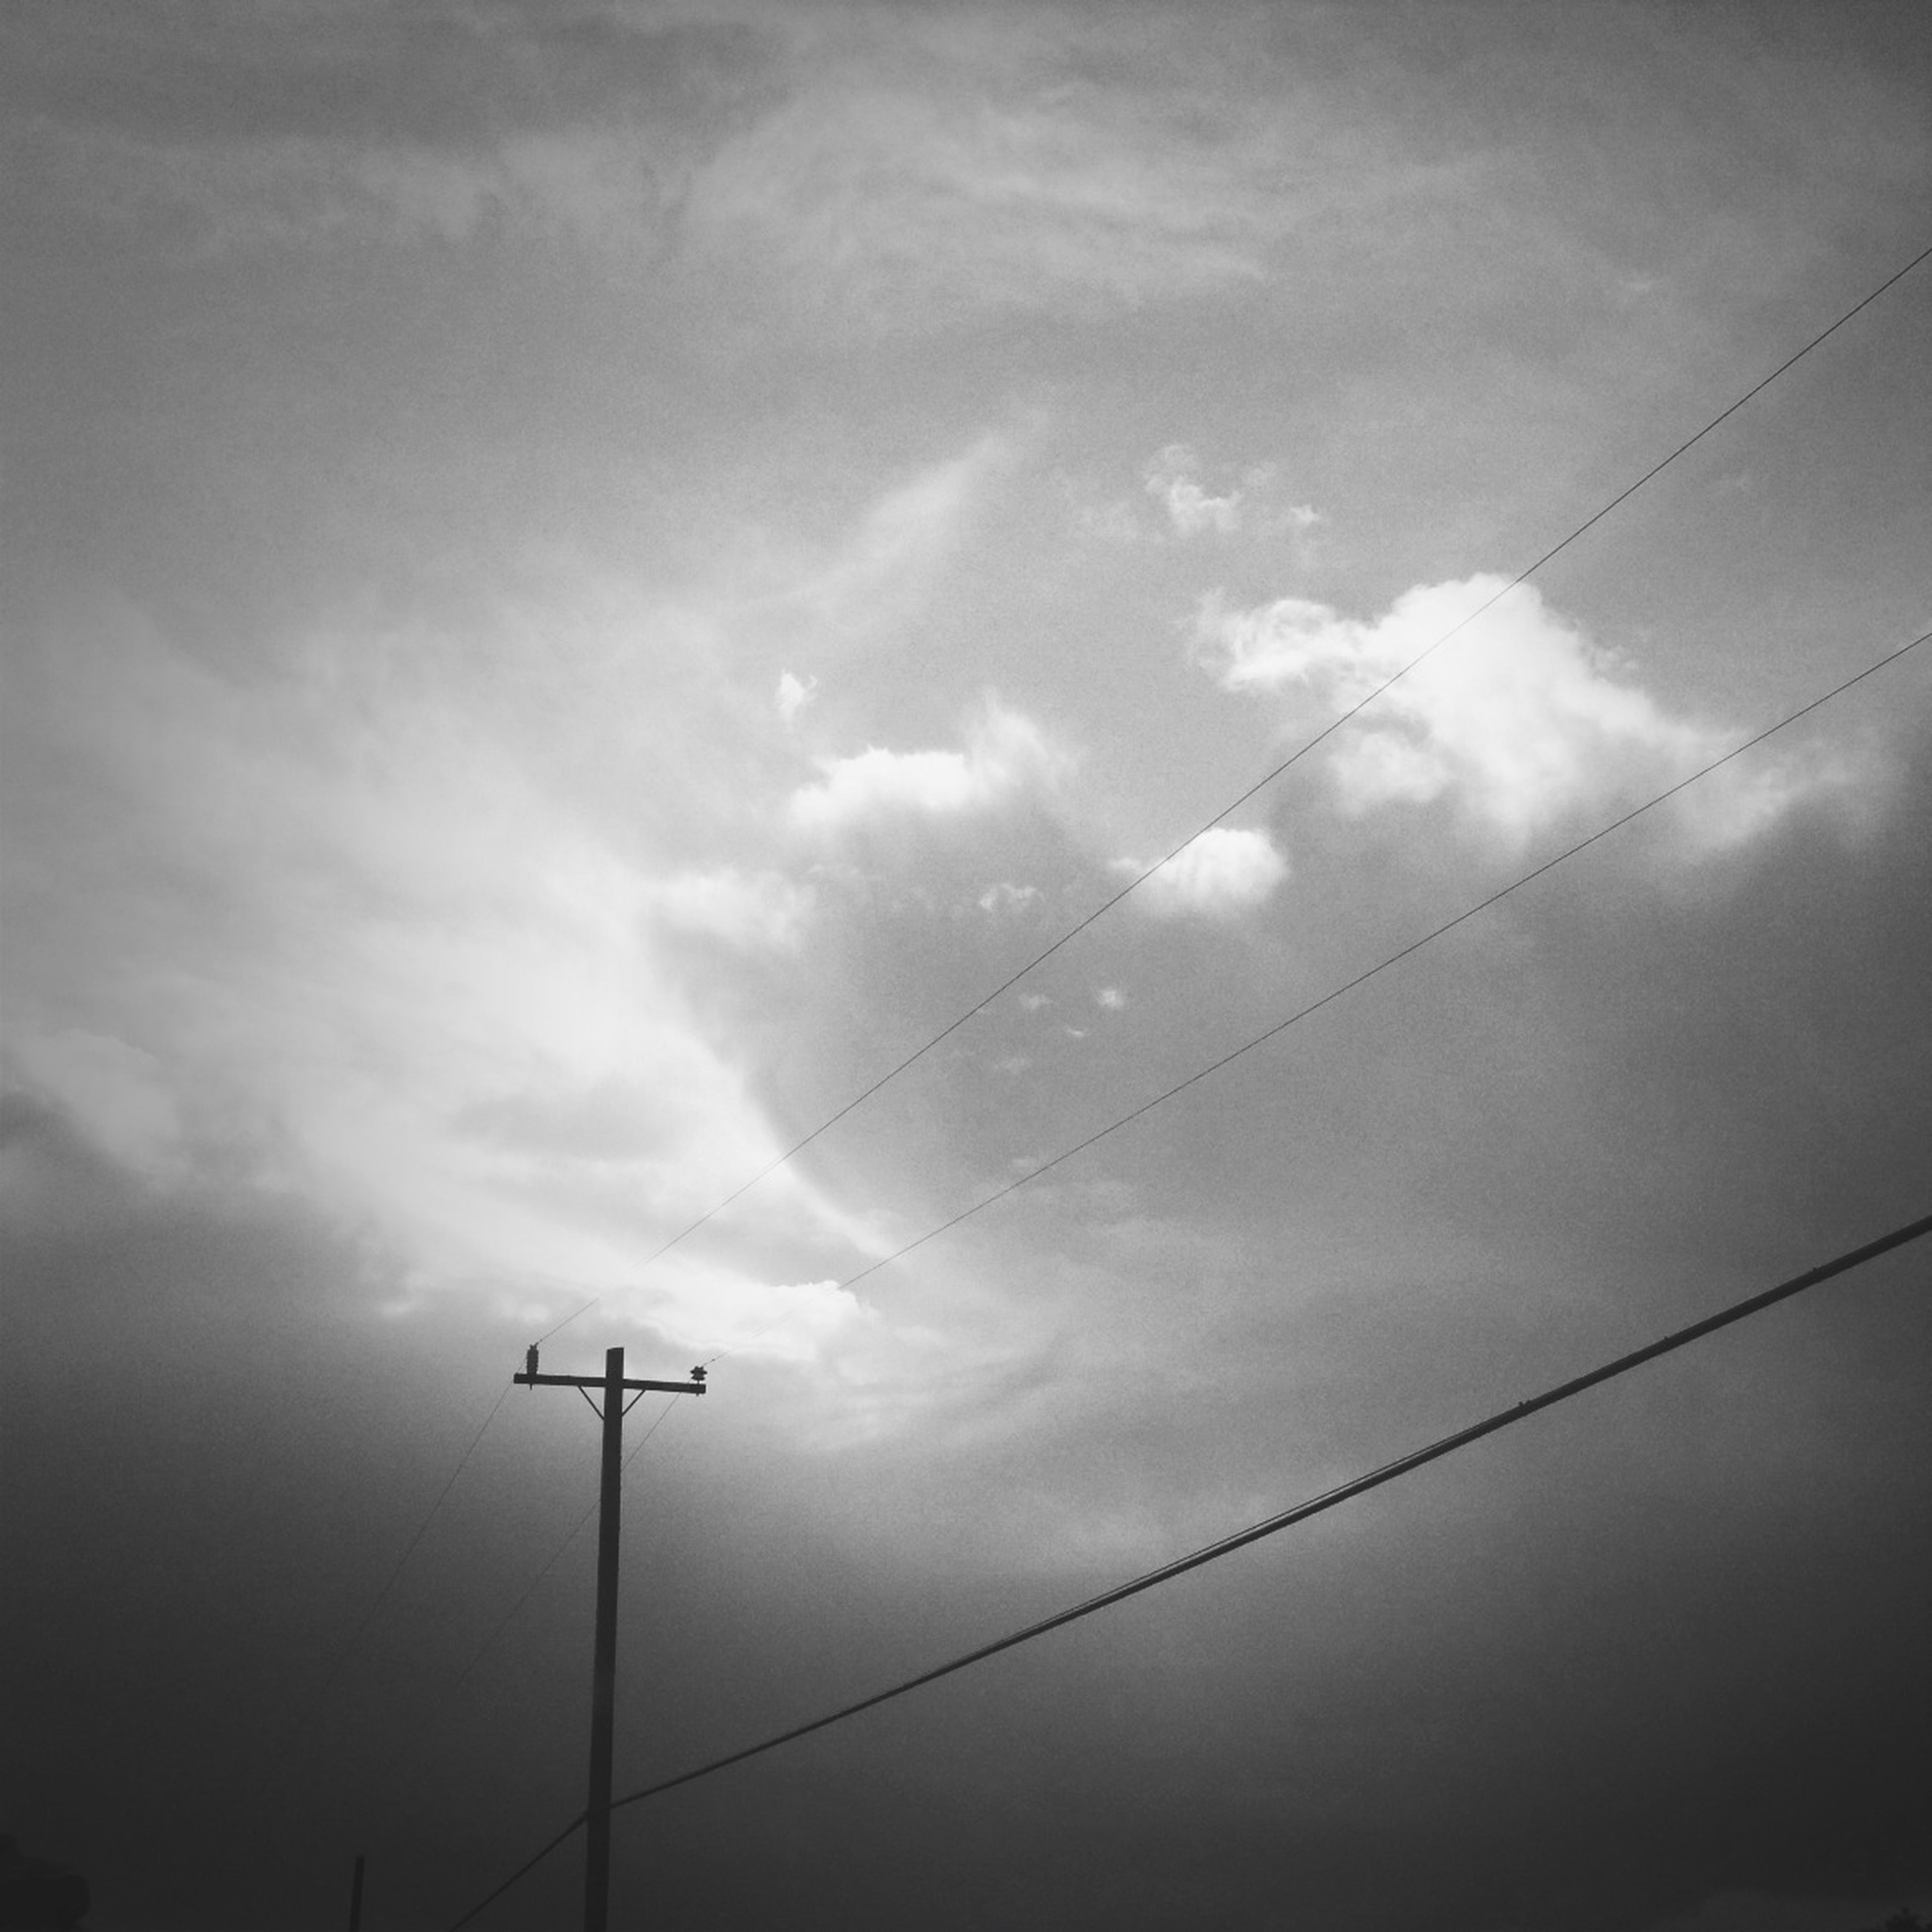 low angle view, sky, power line, electricity, cloud - sky, street light, technology, cable, power supply, fuel and power generation, electricity pylon, lighting equipment, connection, silhouette, cloudy, cloud, nature, pole, no people, outdoors